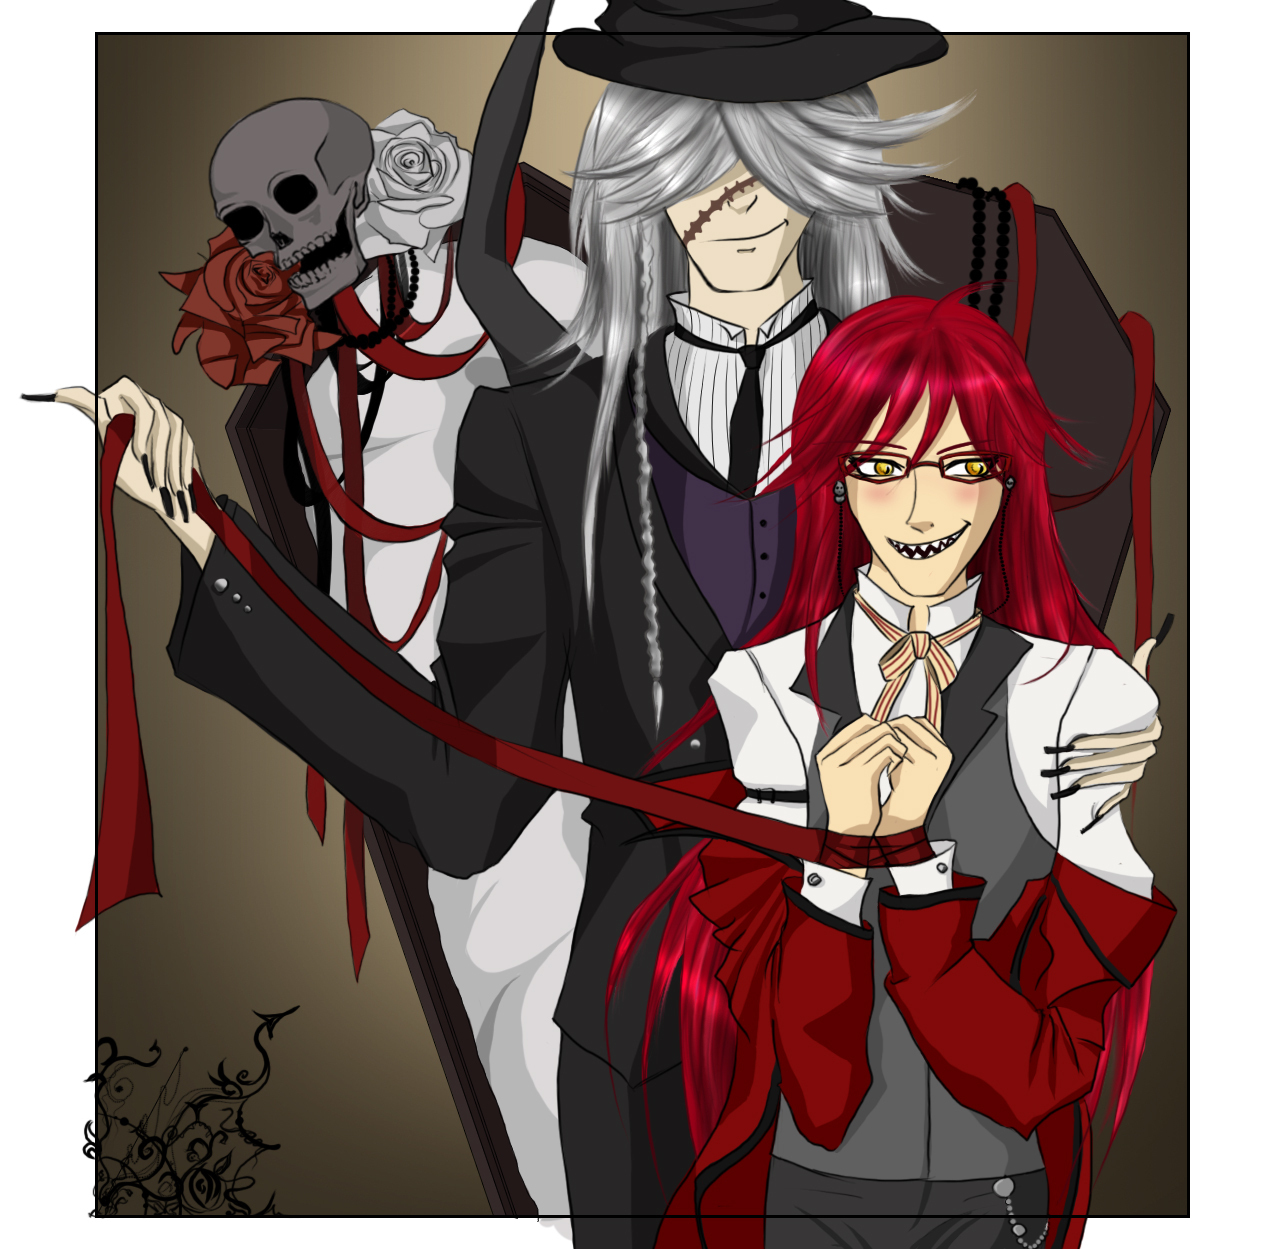 kuroshitsuji images the undertaker and grell hd wallpaper